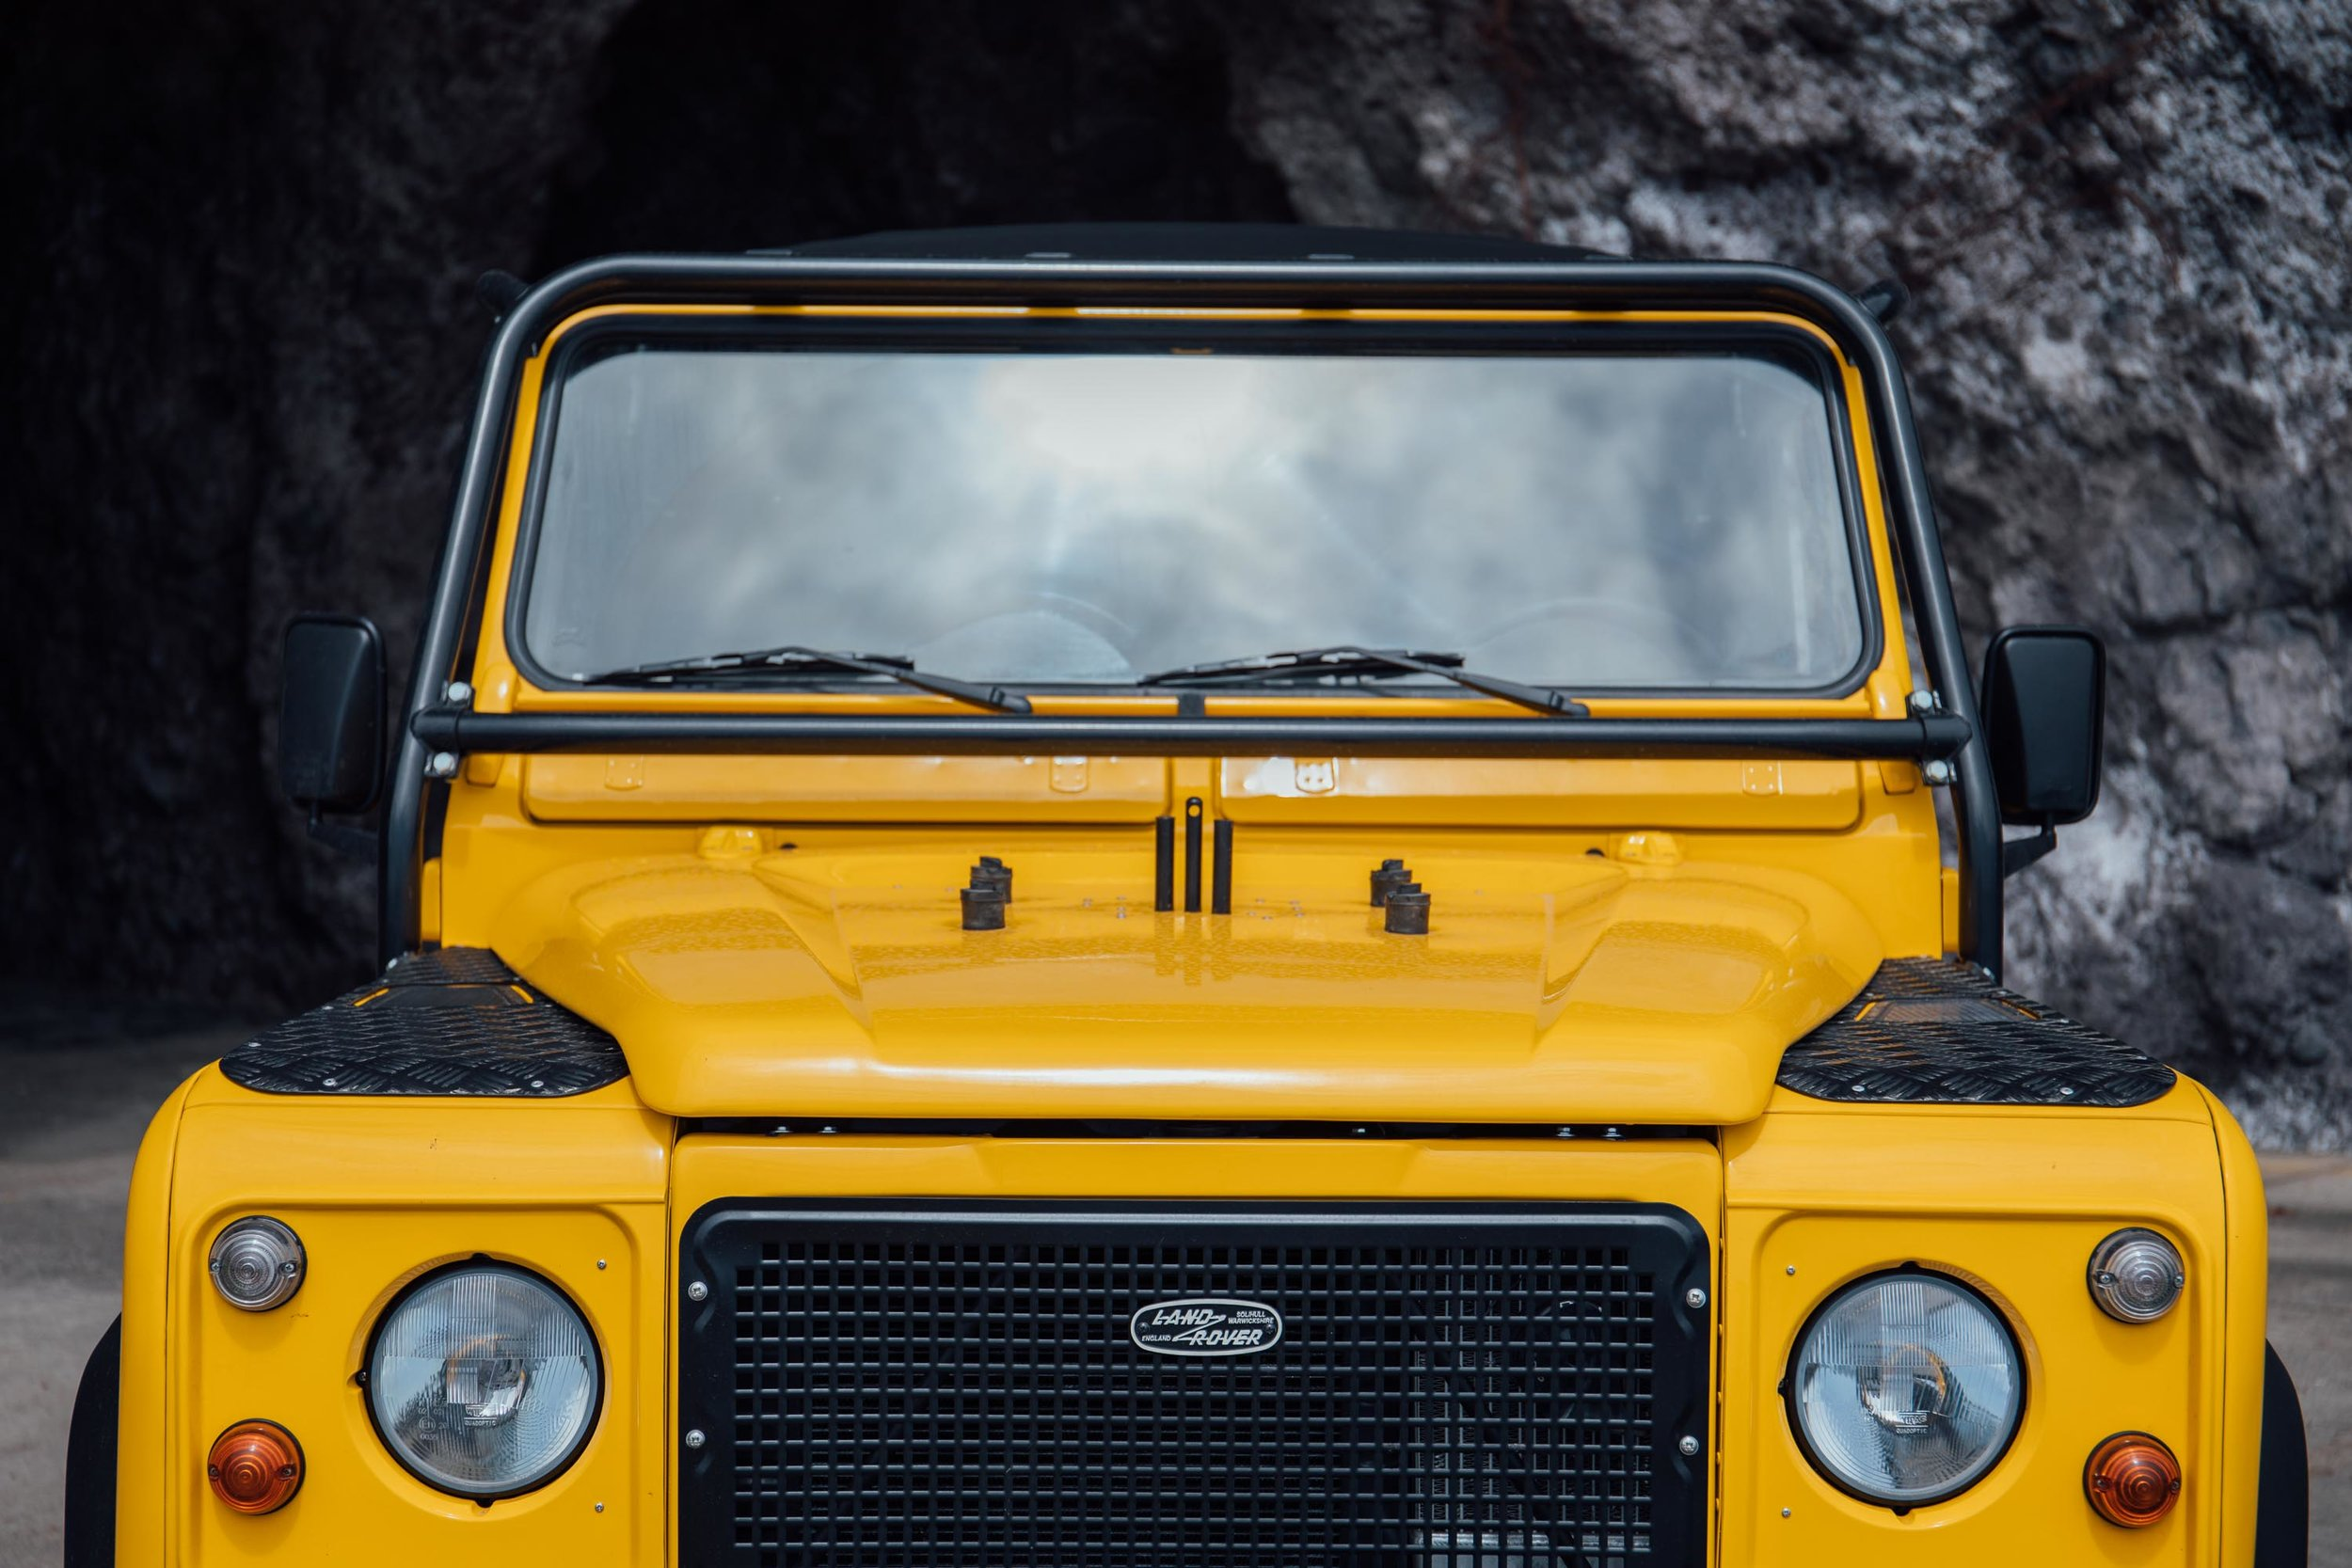 Coolnvintage+Land+Rover+D90+(29+of+69).jpg